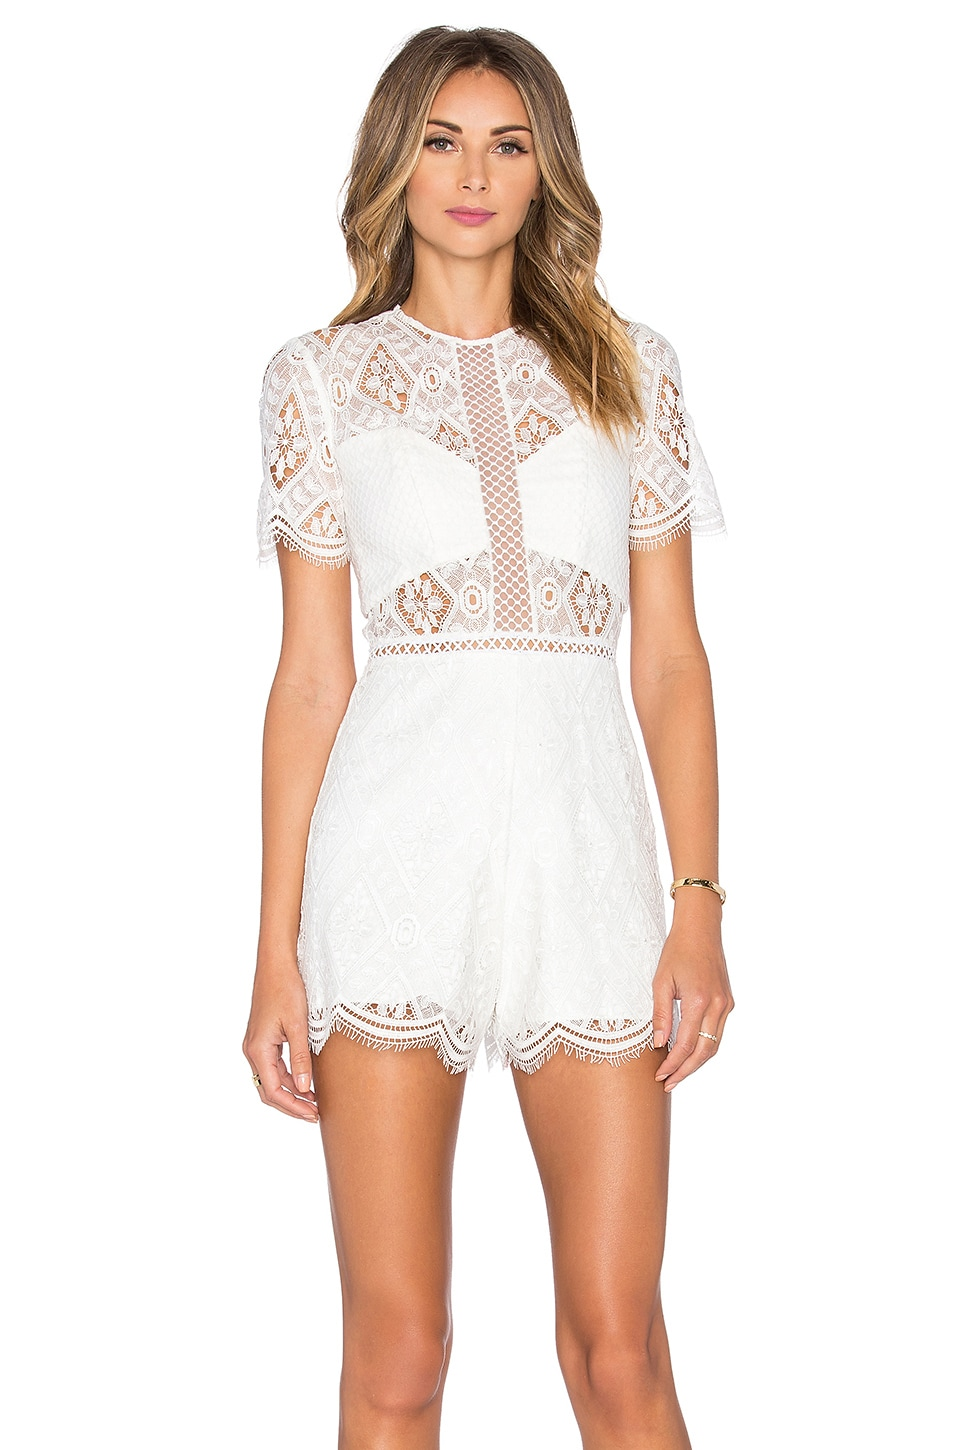 Alexis Brias Romper in Off White Lace